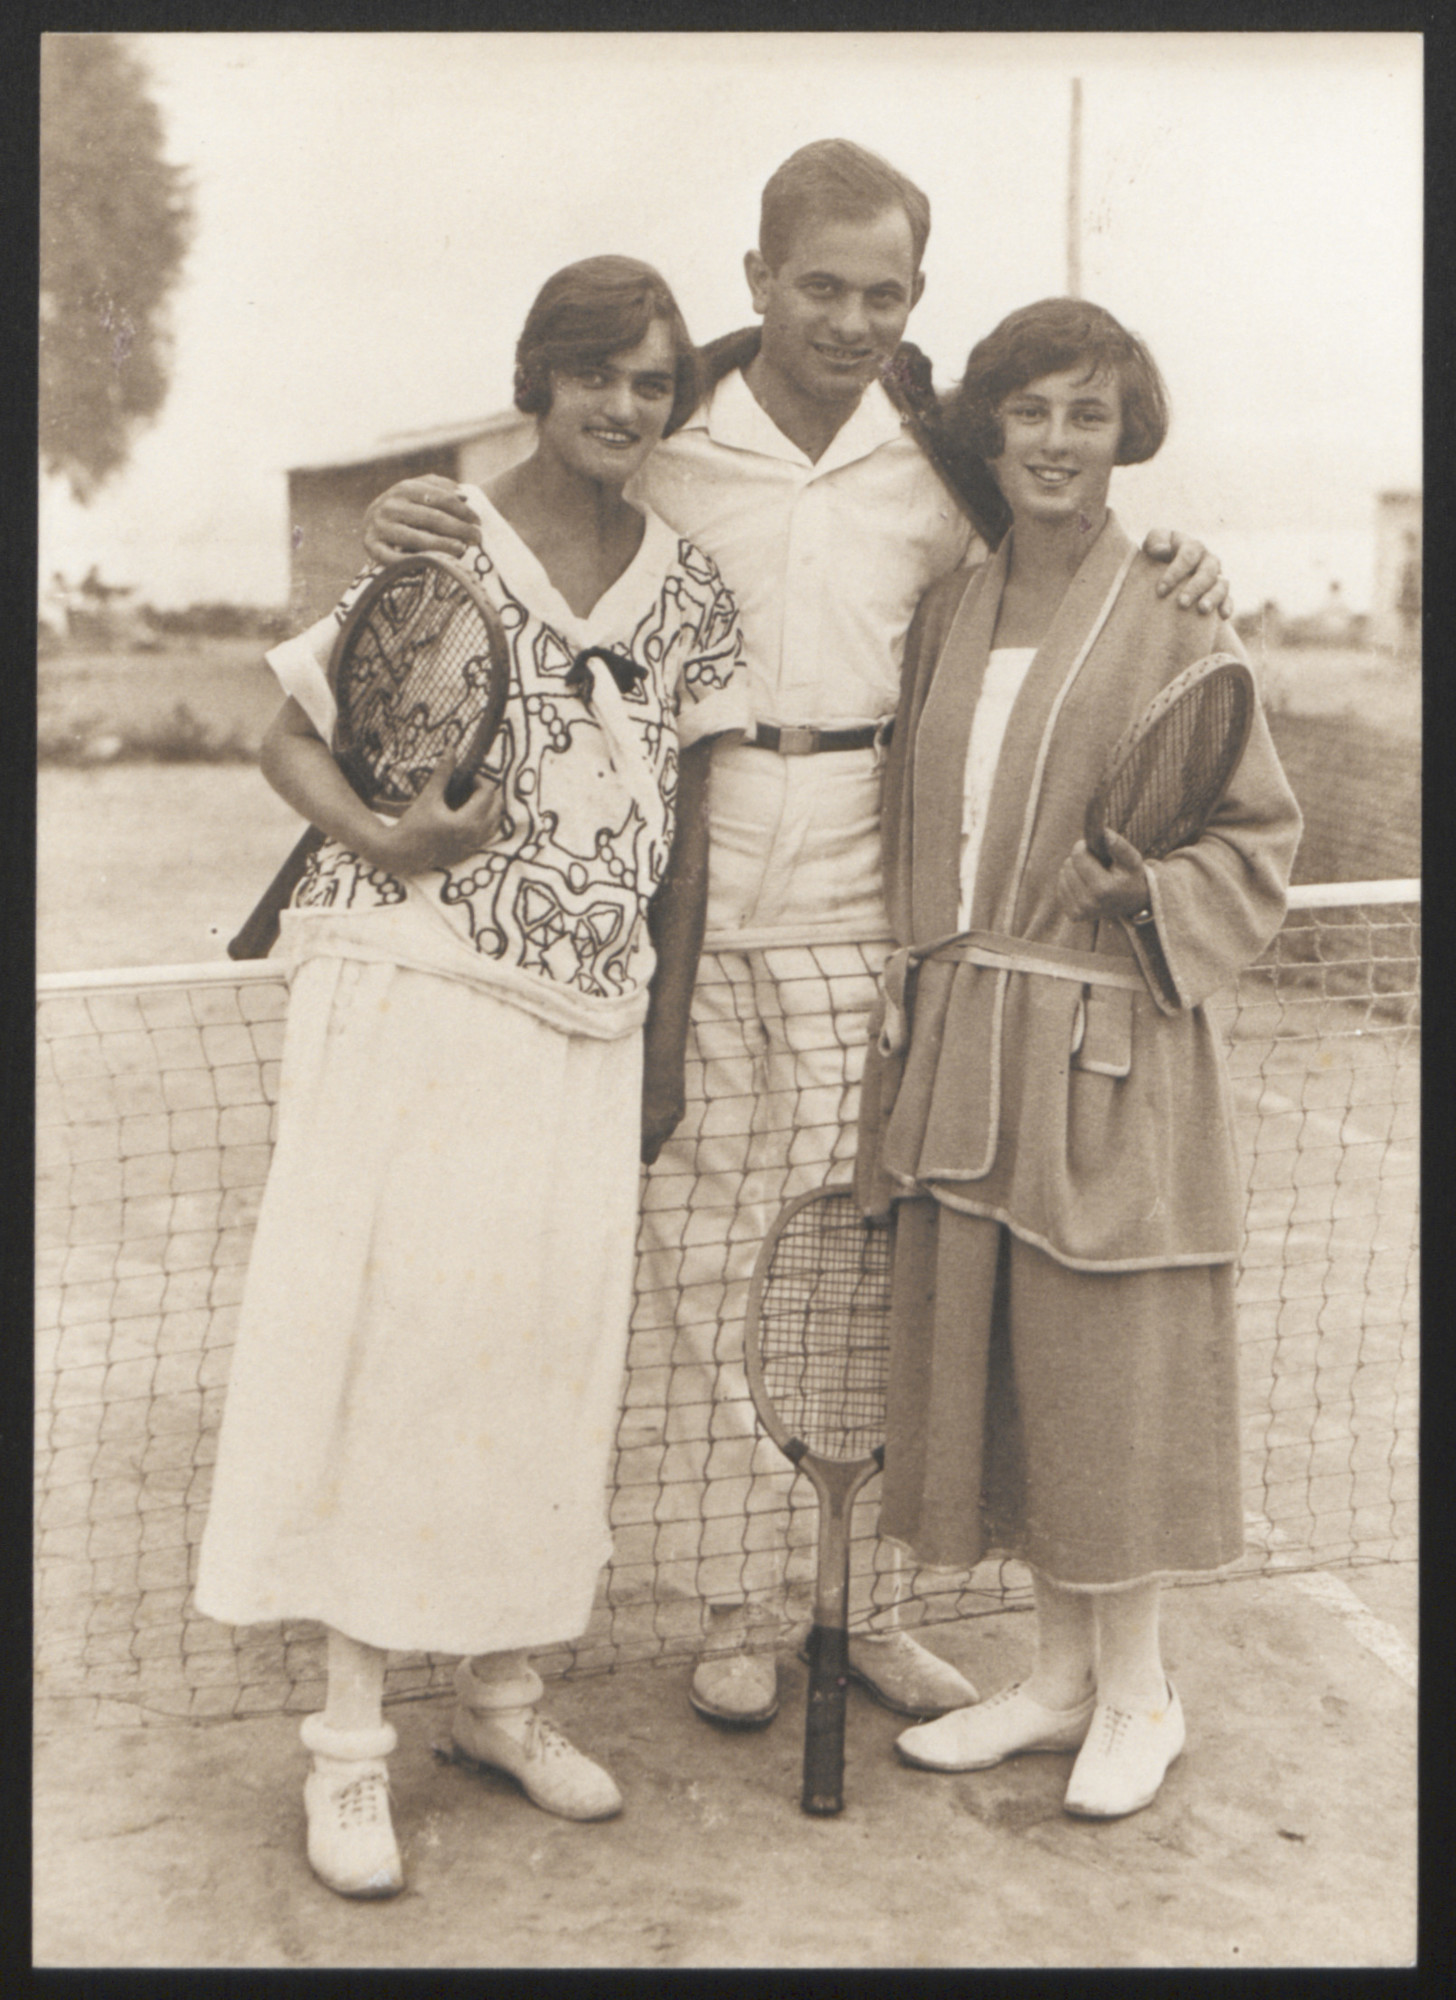 Ernestine (Ily) Munk, her brother Louis Munk and his sister-in-law Macko Garay, nee Adler pose at a tennis court.